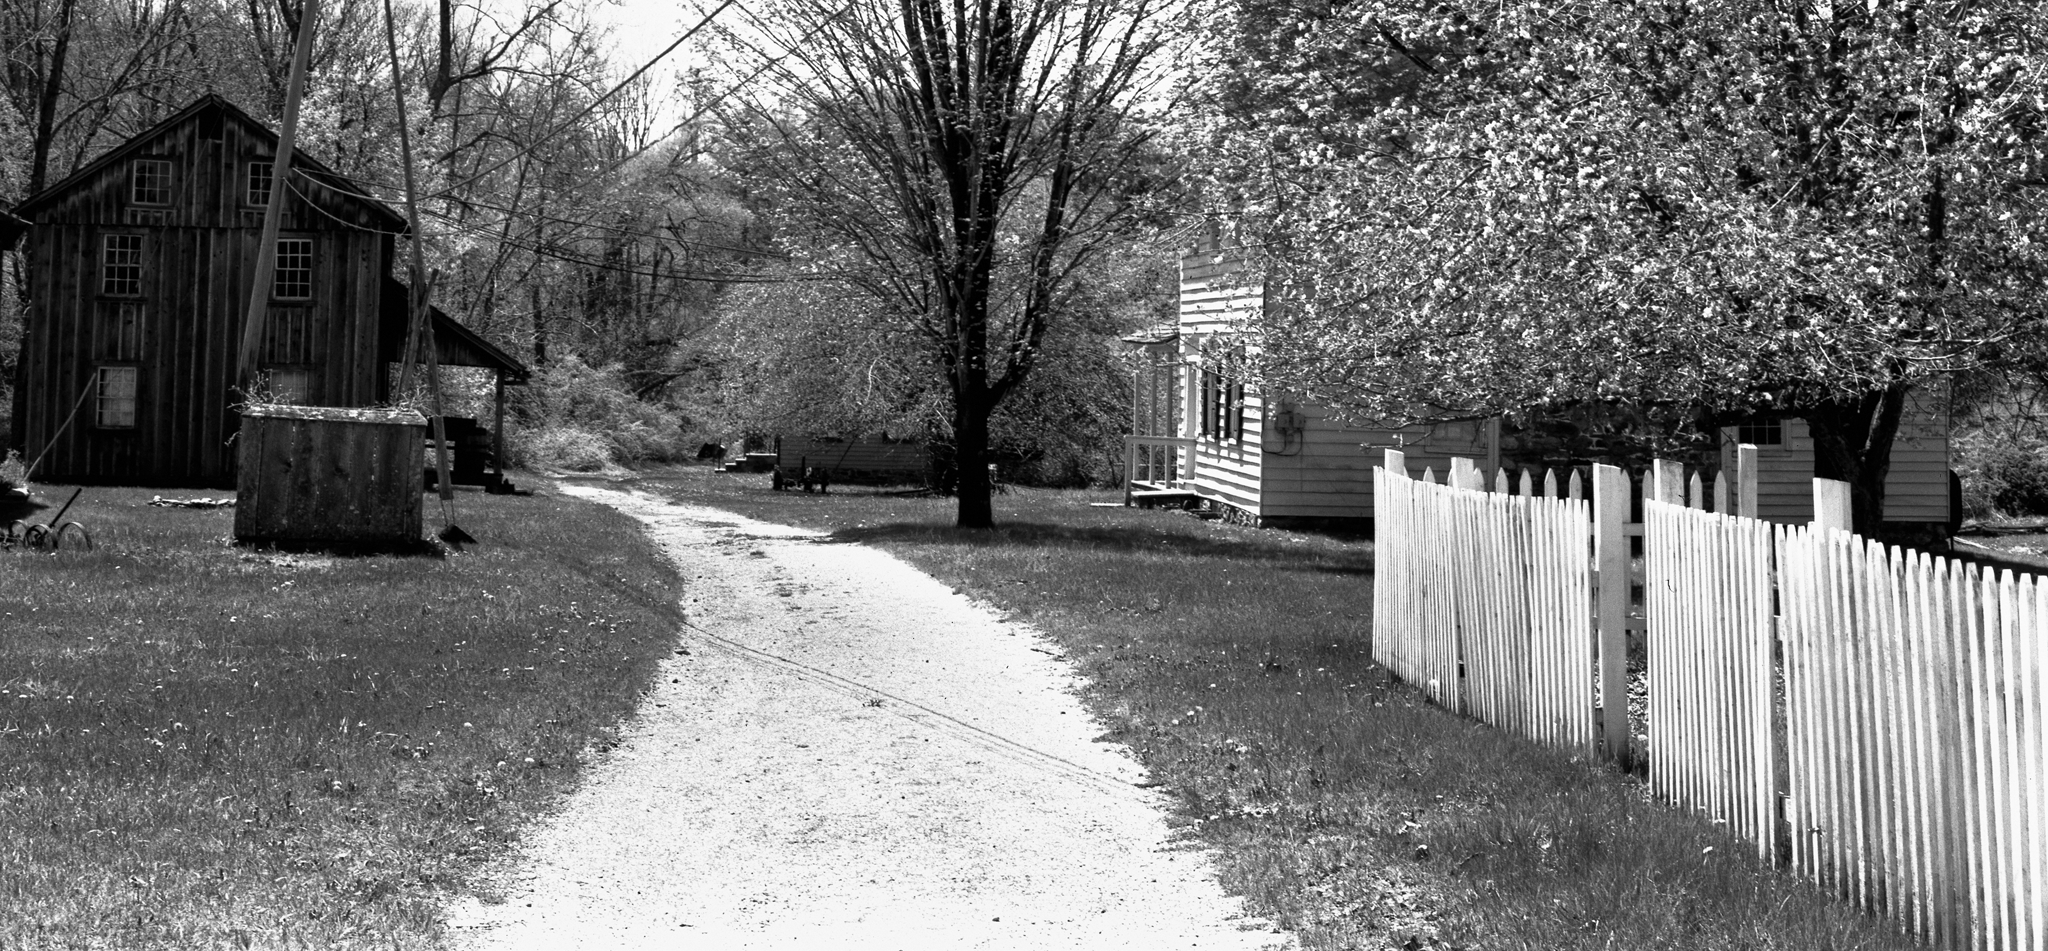 4x5_for_365_project_0135_Millbrook_path.png